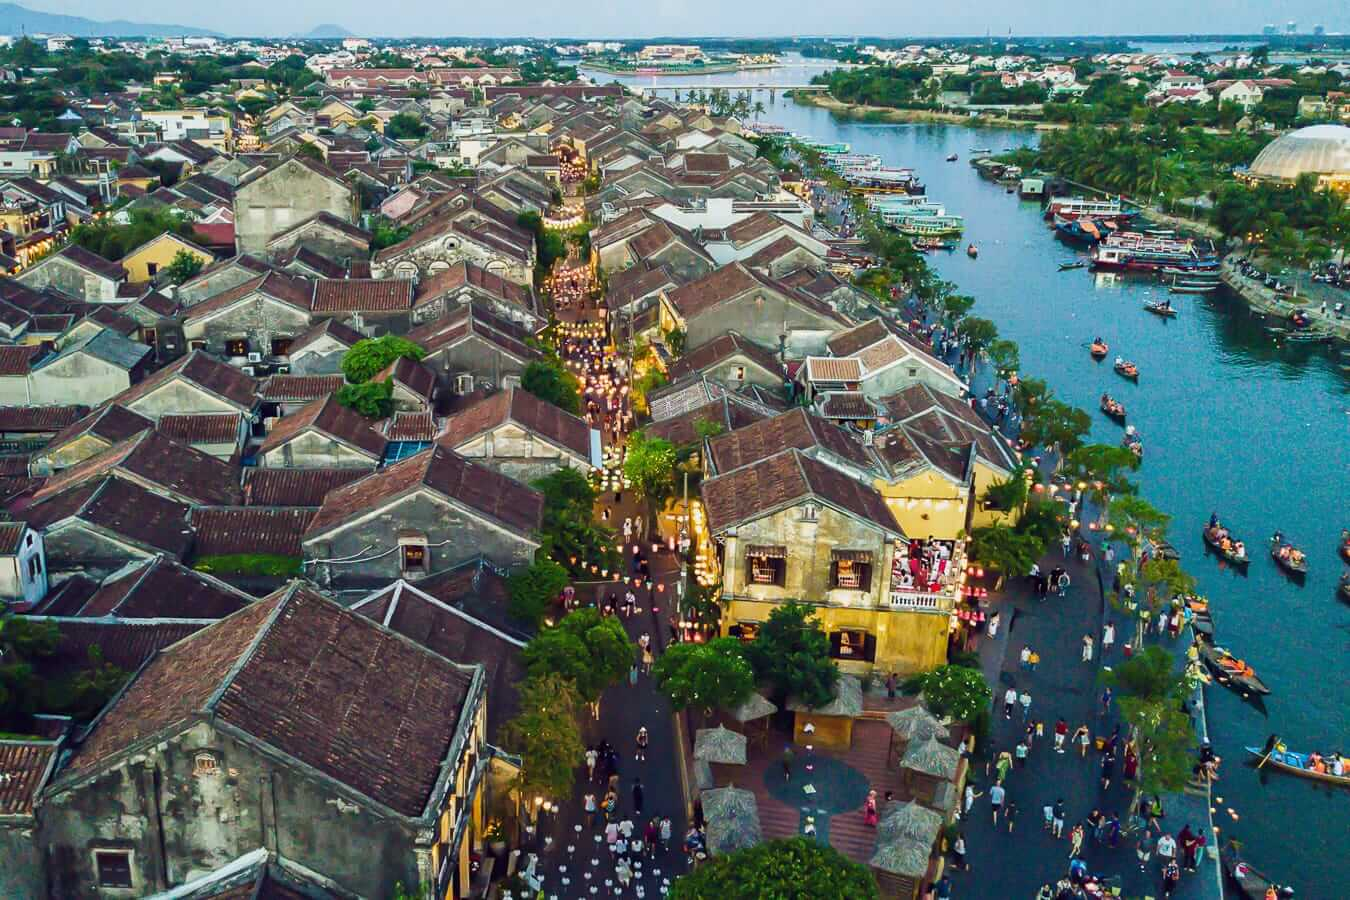 Aerial view of Hoi An Old Town: Hoi An airport